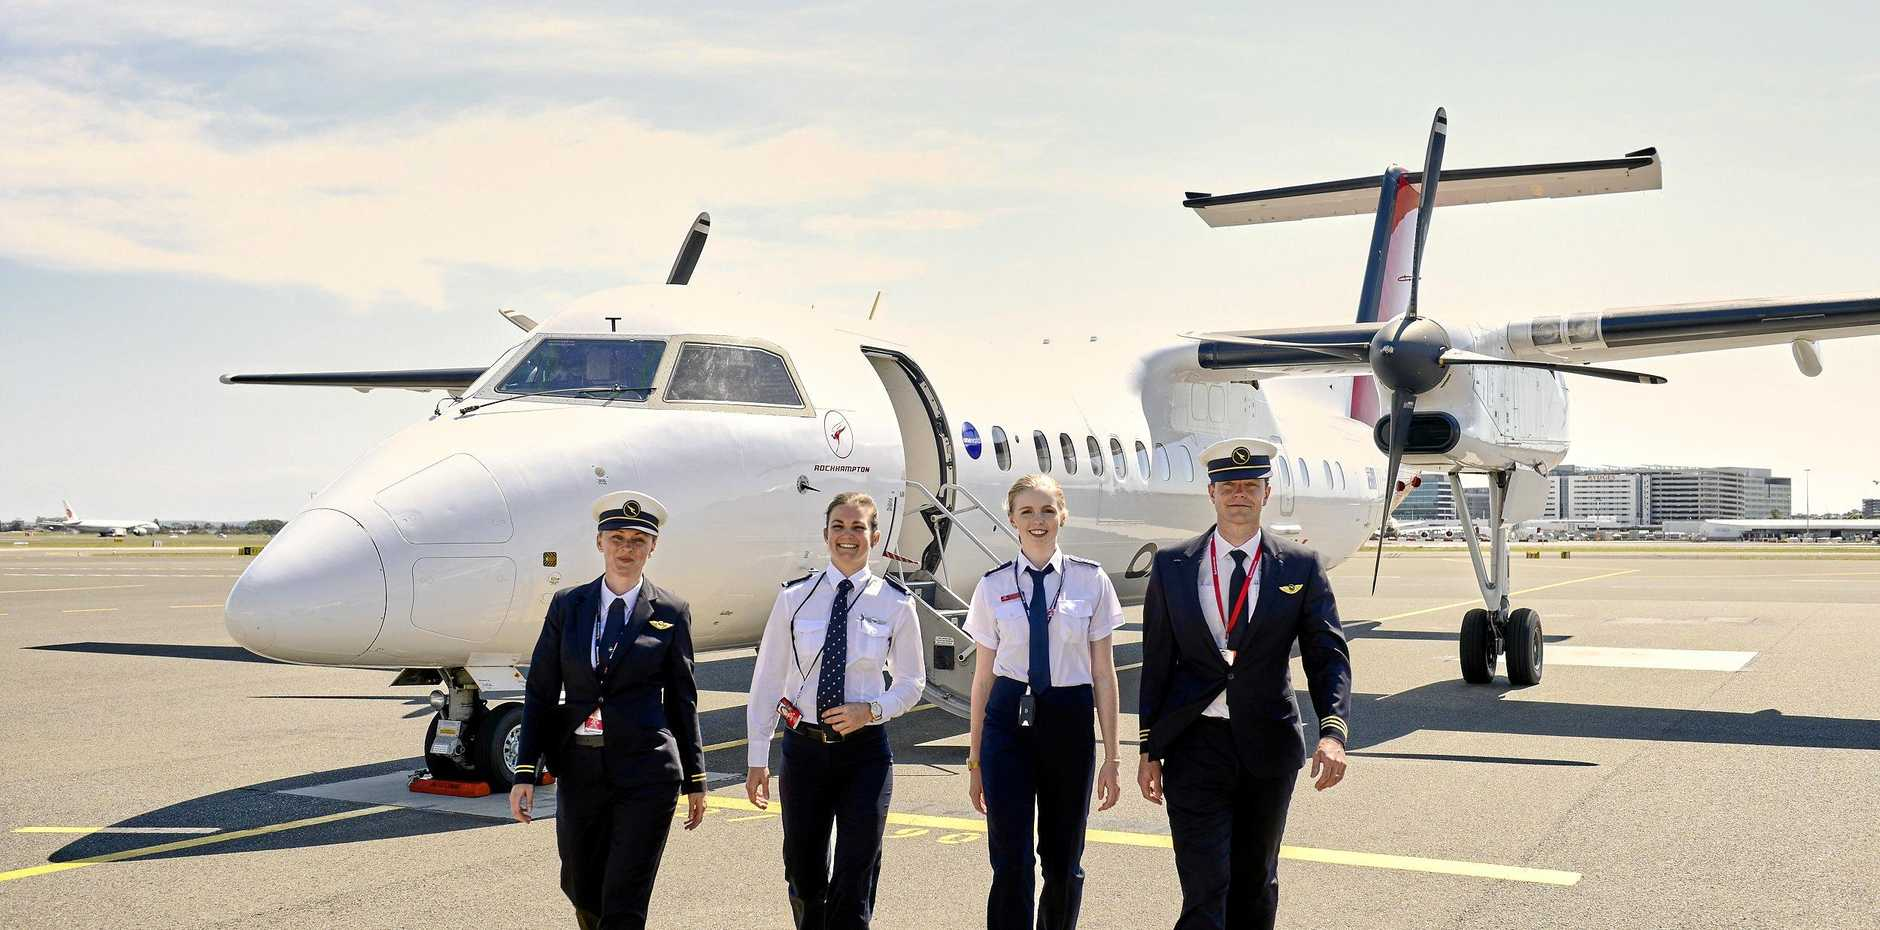 SMOOTH LANDING: Bundaberg is the perfect place for Qantas to establish a pilot academy capable of training up to 500 pilots a year, to help meet the increasing need for skilled aviators in one of the fastest-growing global industries.